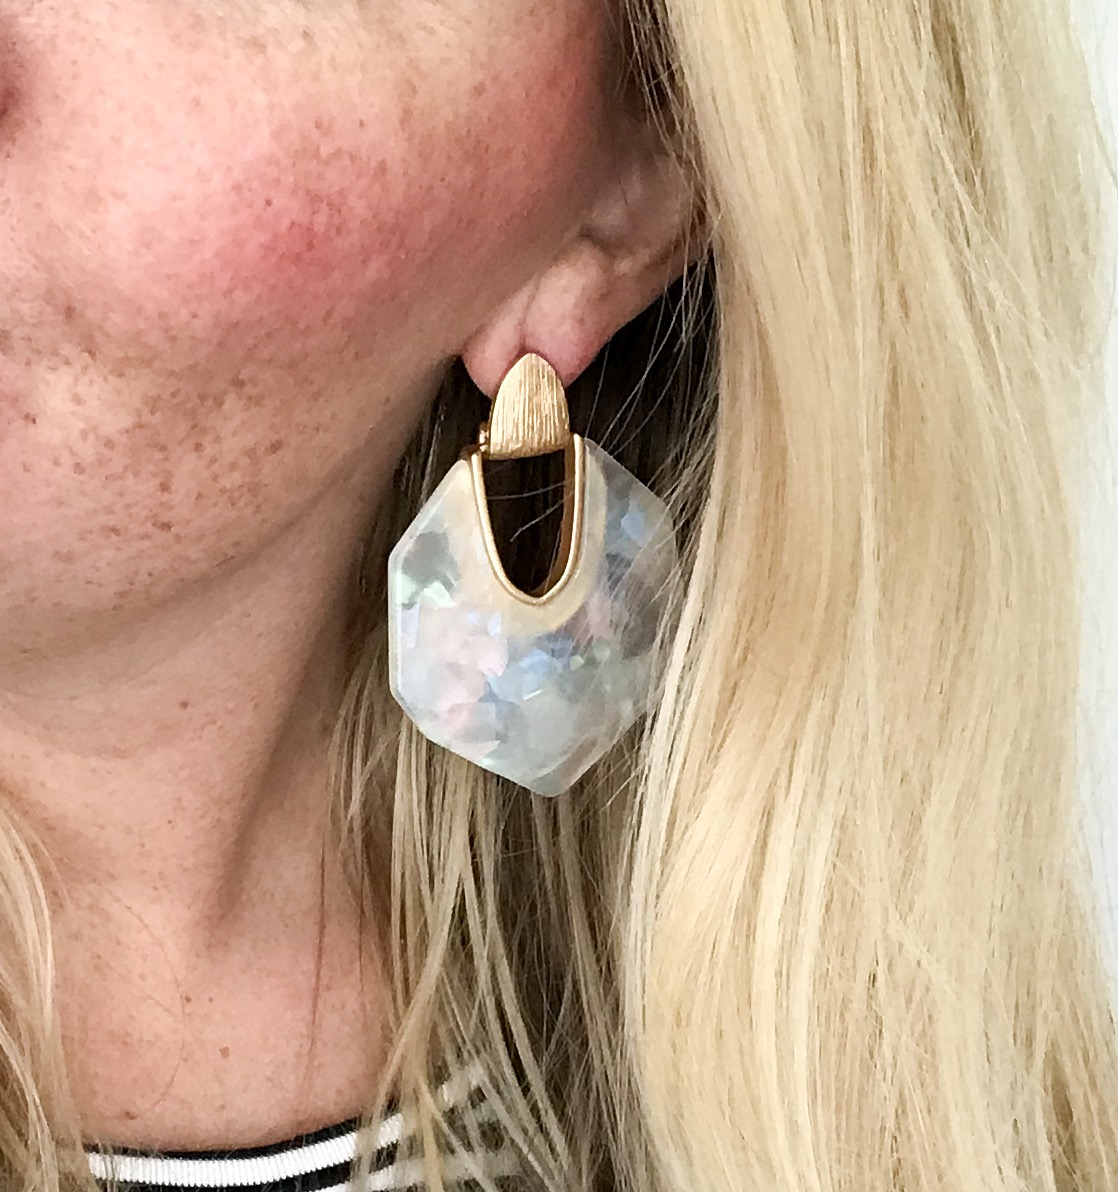 Rozie June Earrings - Accessories to change your life, and mood. for Real Save 10% with code: TARA